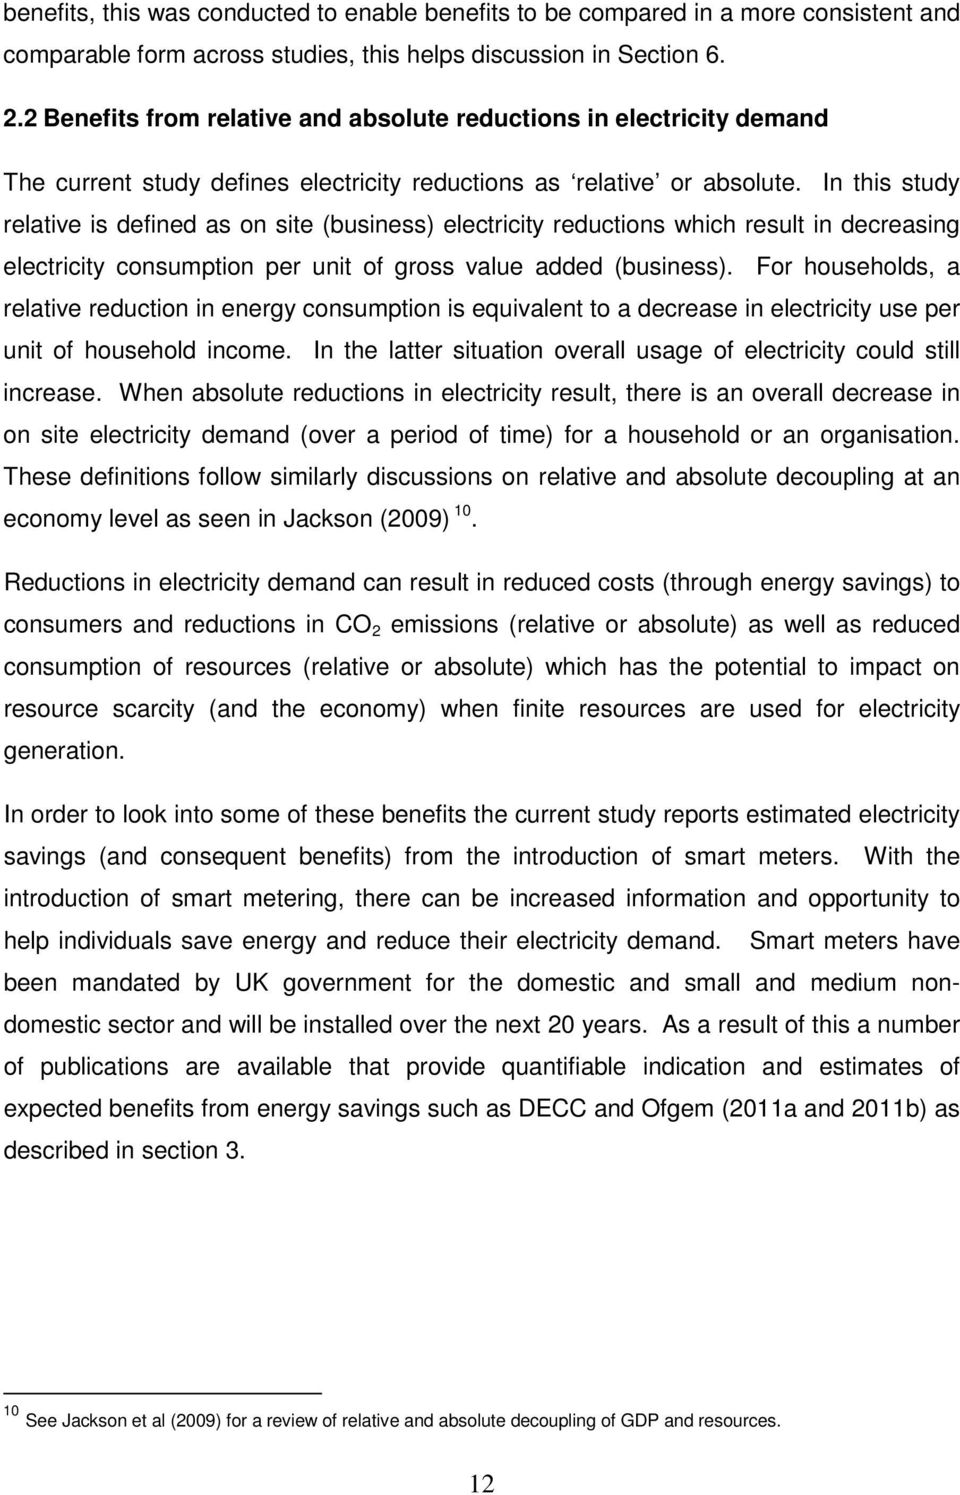 In this study relative is defined as on site (business) electricity reductions which result in decreasing electricity consumption per unit of gross value added (business).